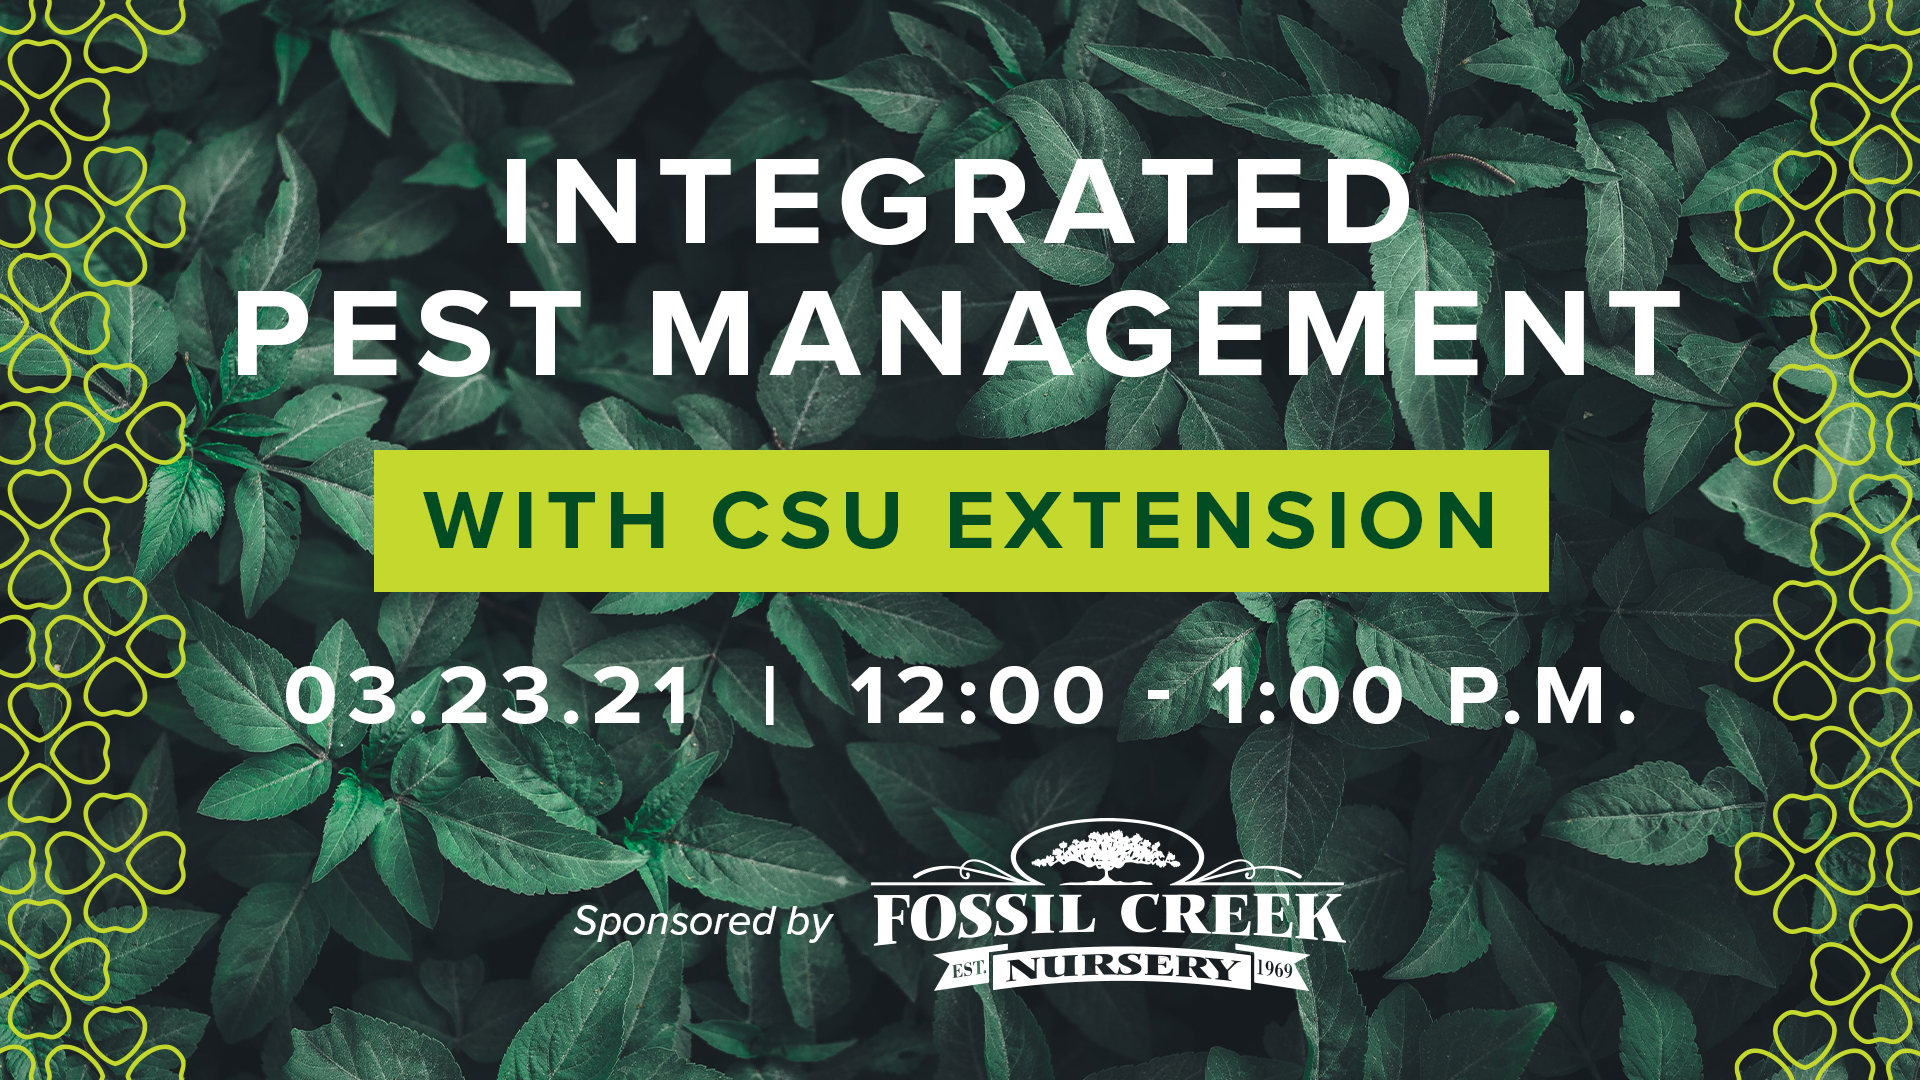 Image for Gardening Series with CSU Extension: Integrated Pest Management webinar